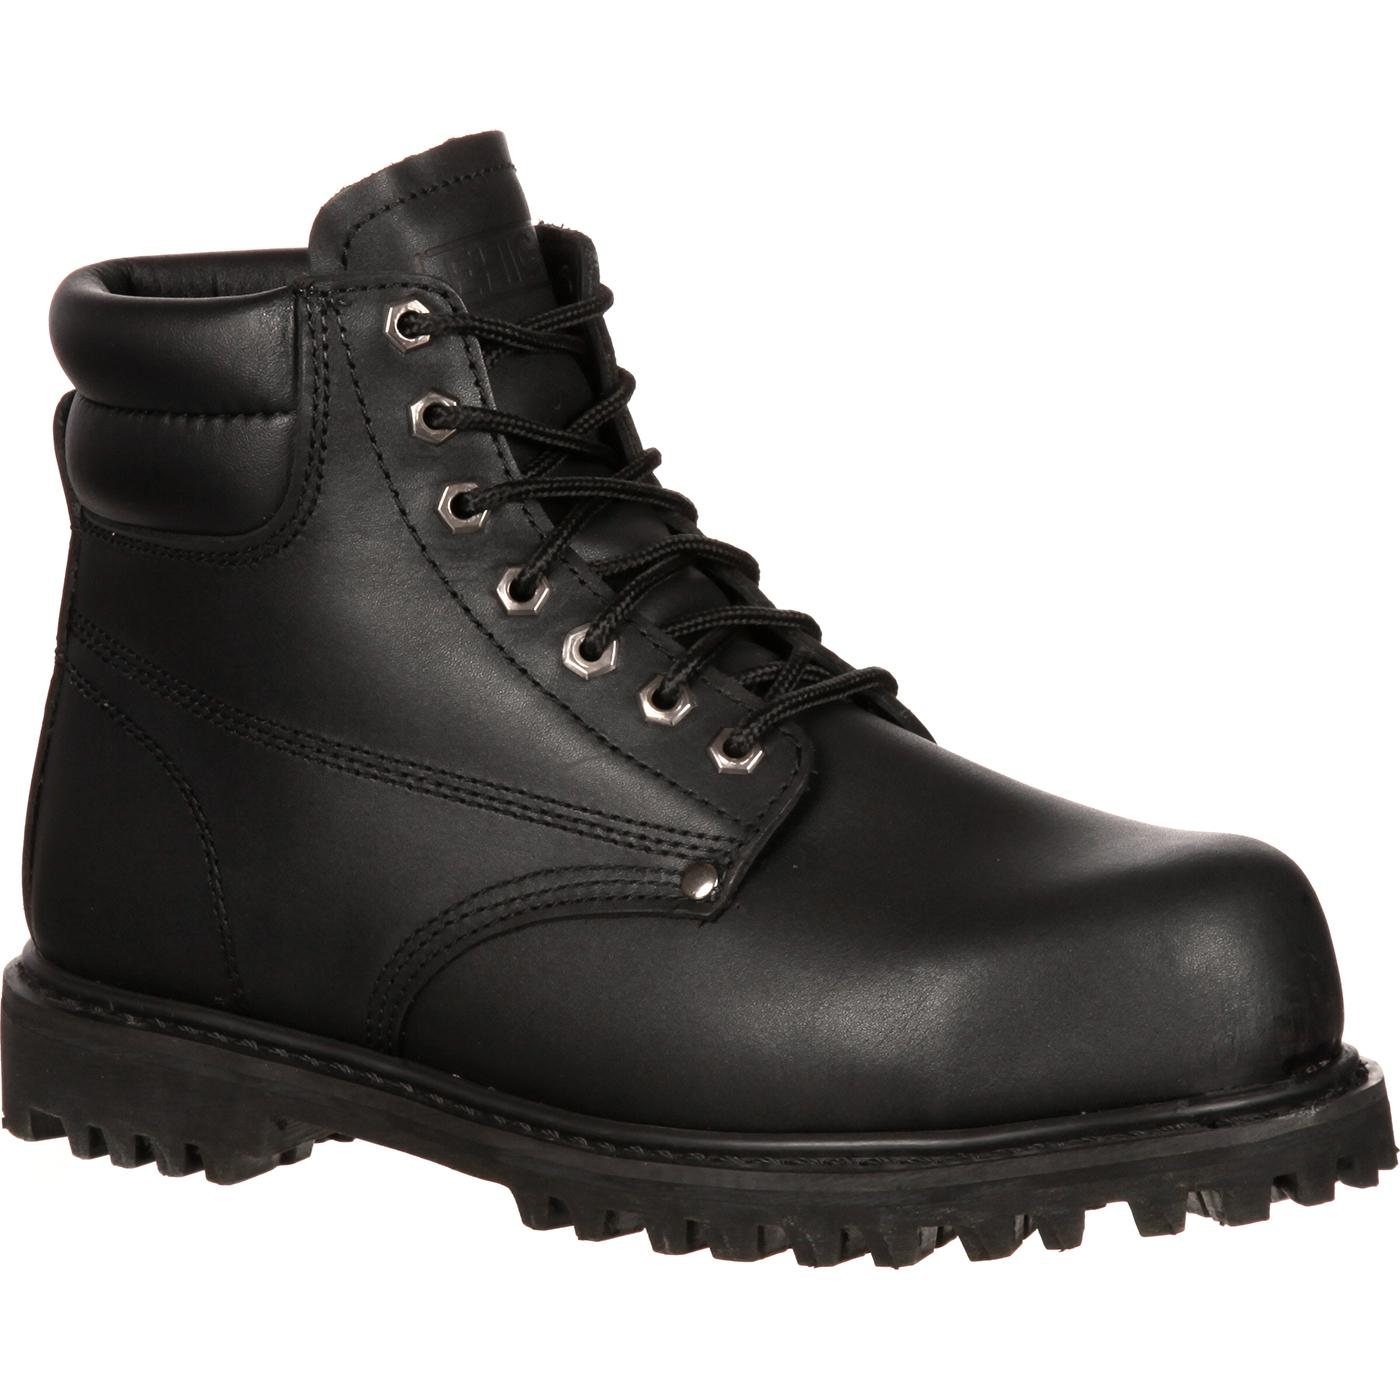 Wide Steel Toe Shoes